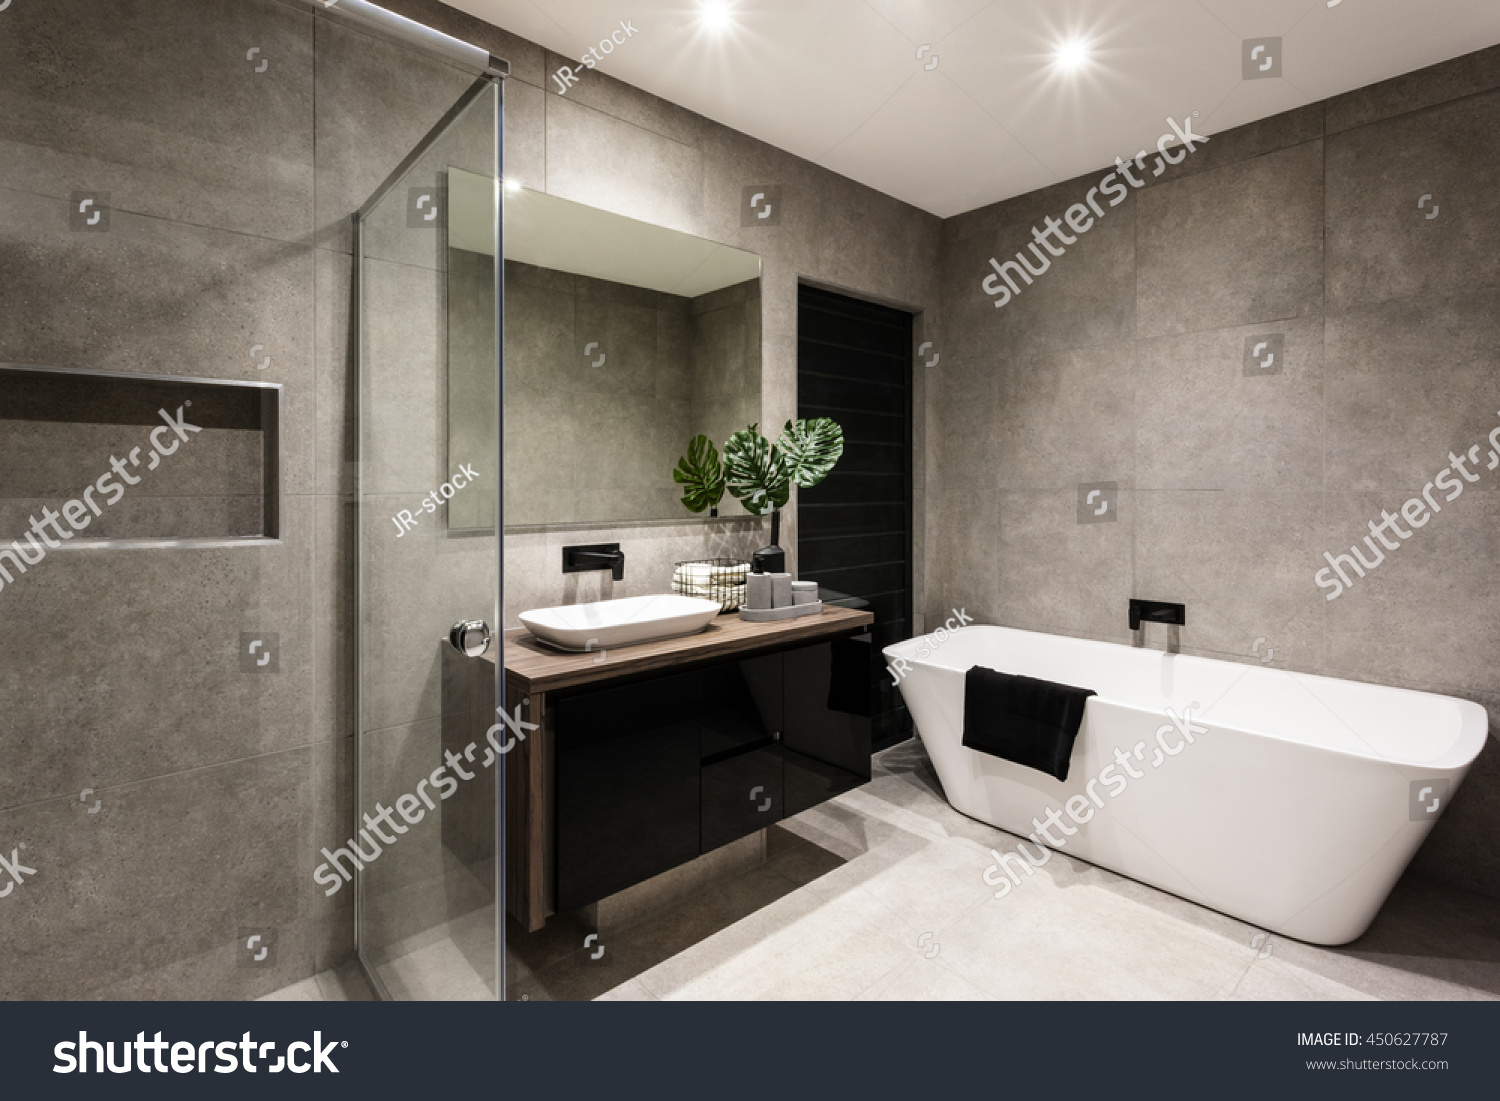 Round Mirror With Light Modern Bathroom Shower Area Bath Tub Stock Photo 450627787